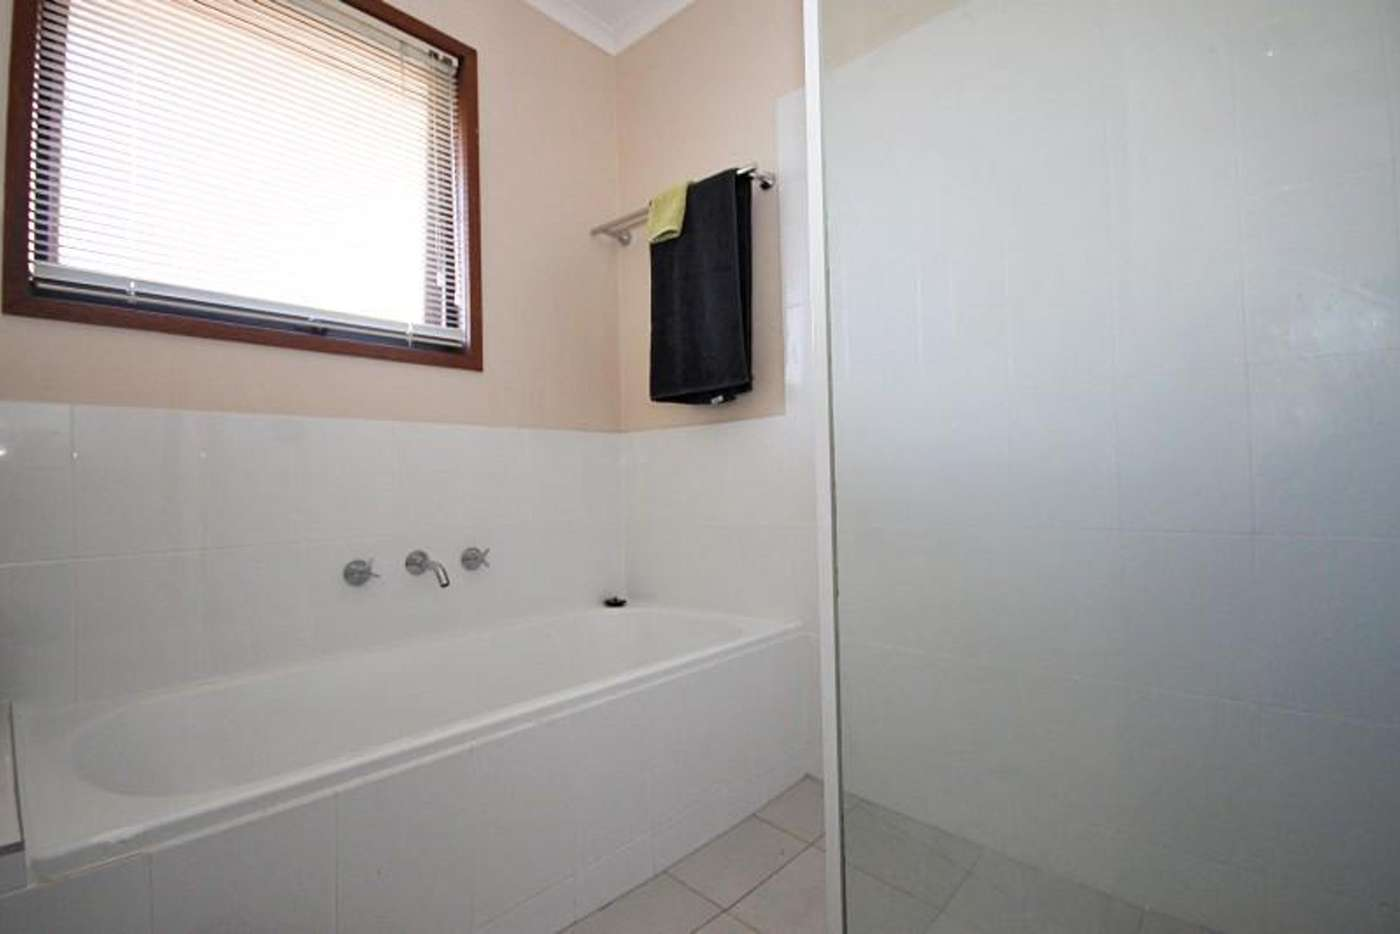 Sixth view of Homely house listing, 73 Longley Street, Alfredton VIC 3350